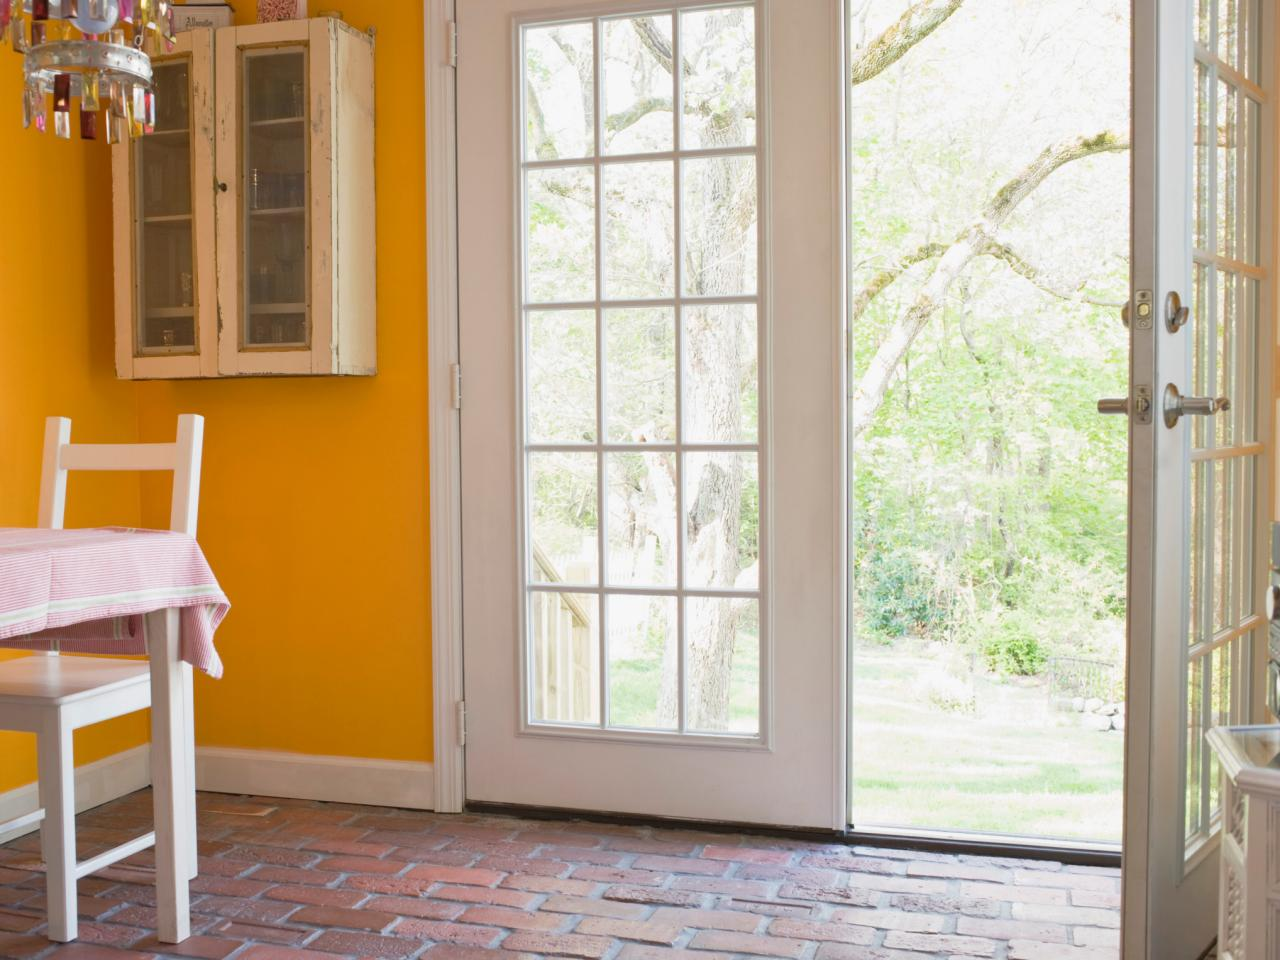 How to install french doors hgtv for Sliding glass door to french door